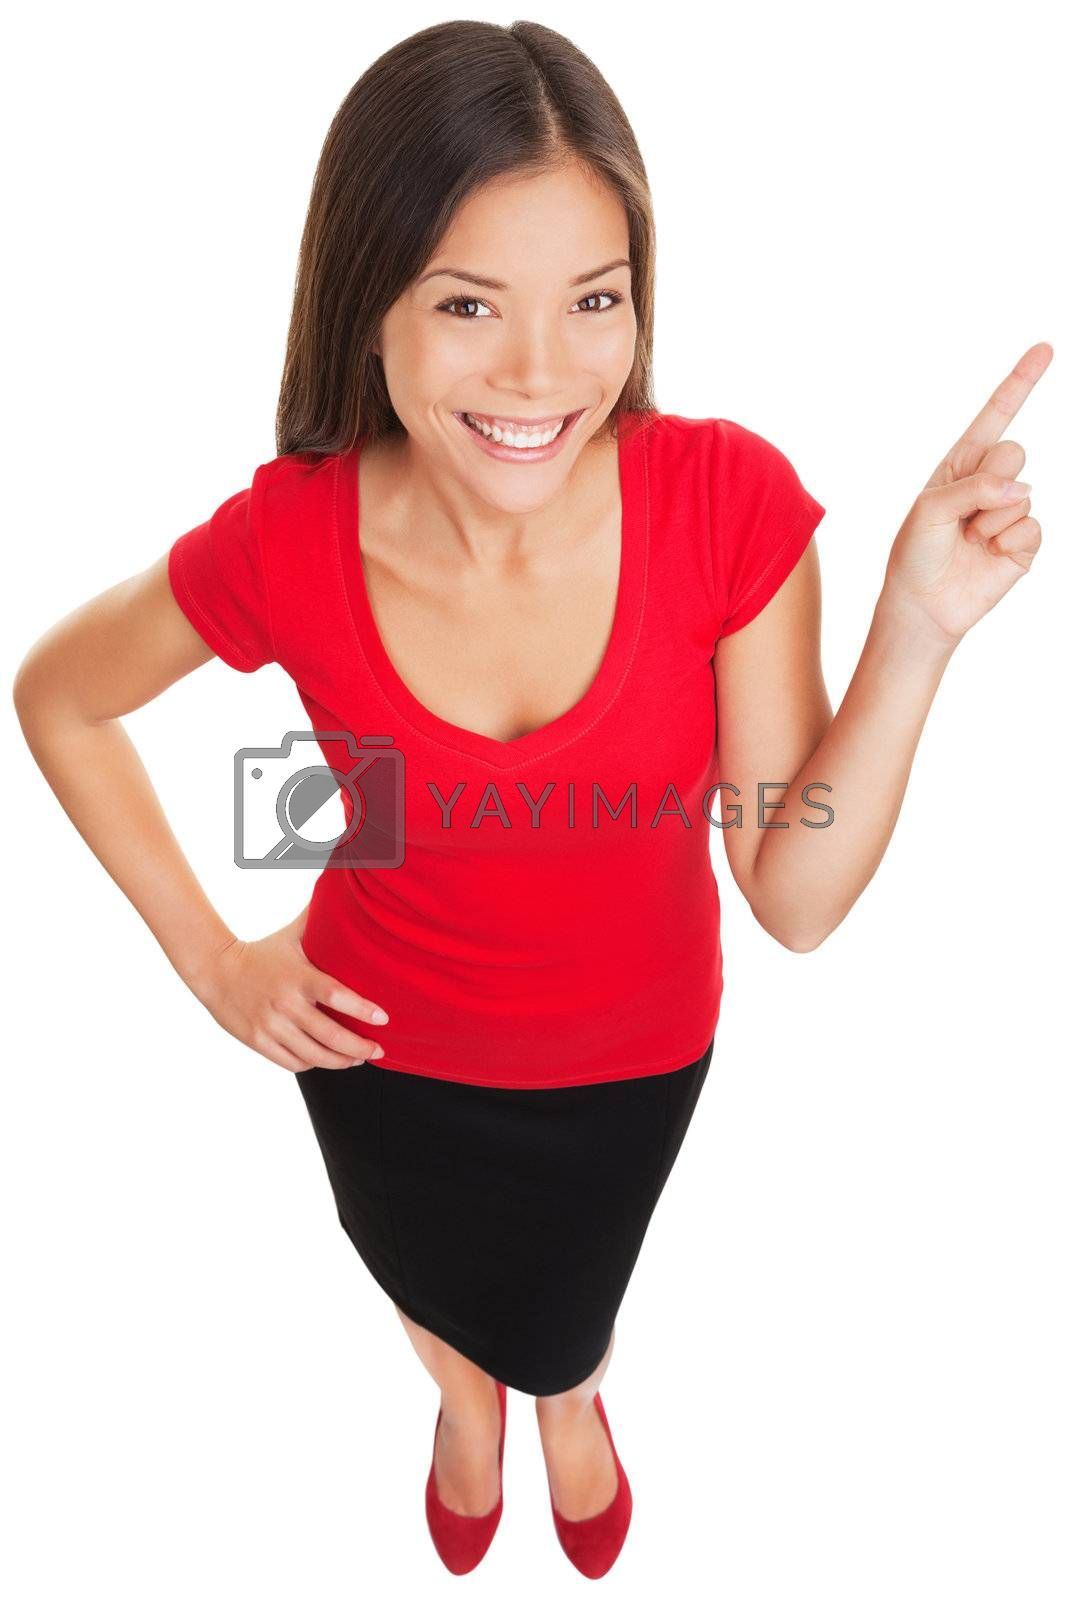 Pointing showing woman smiling cheerful. Funny high angle portrait of a beautiful happy woman pointing with her finger at copy space. Multiracial Asian Caucasian business woman isolated on white.